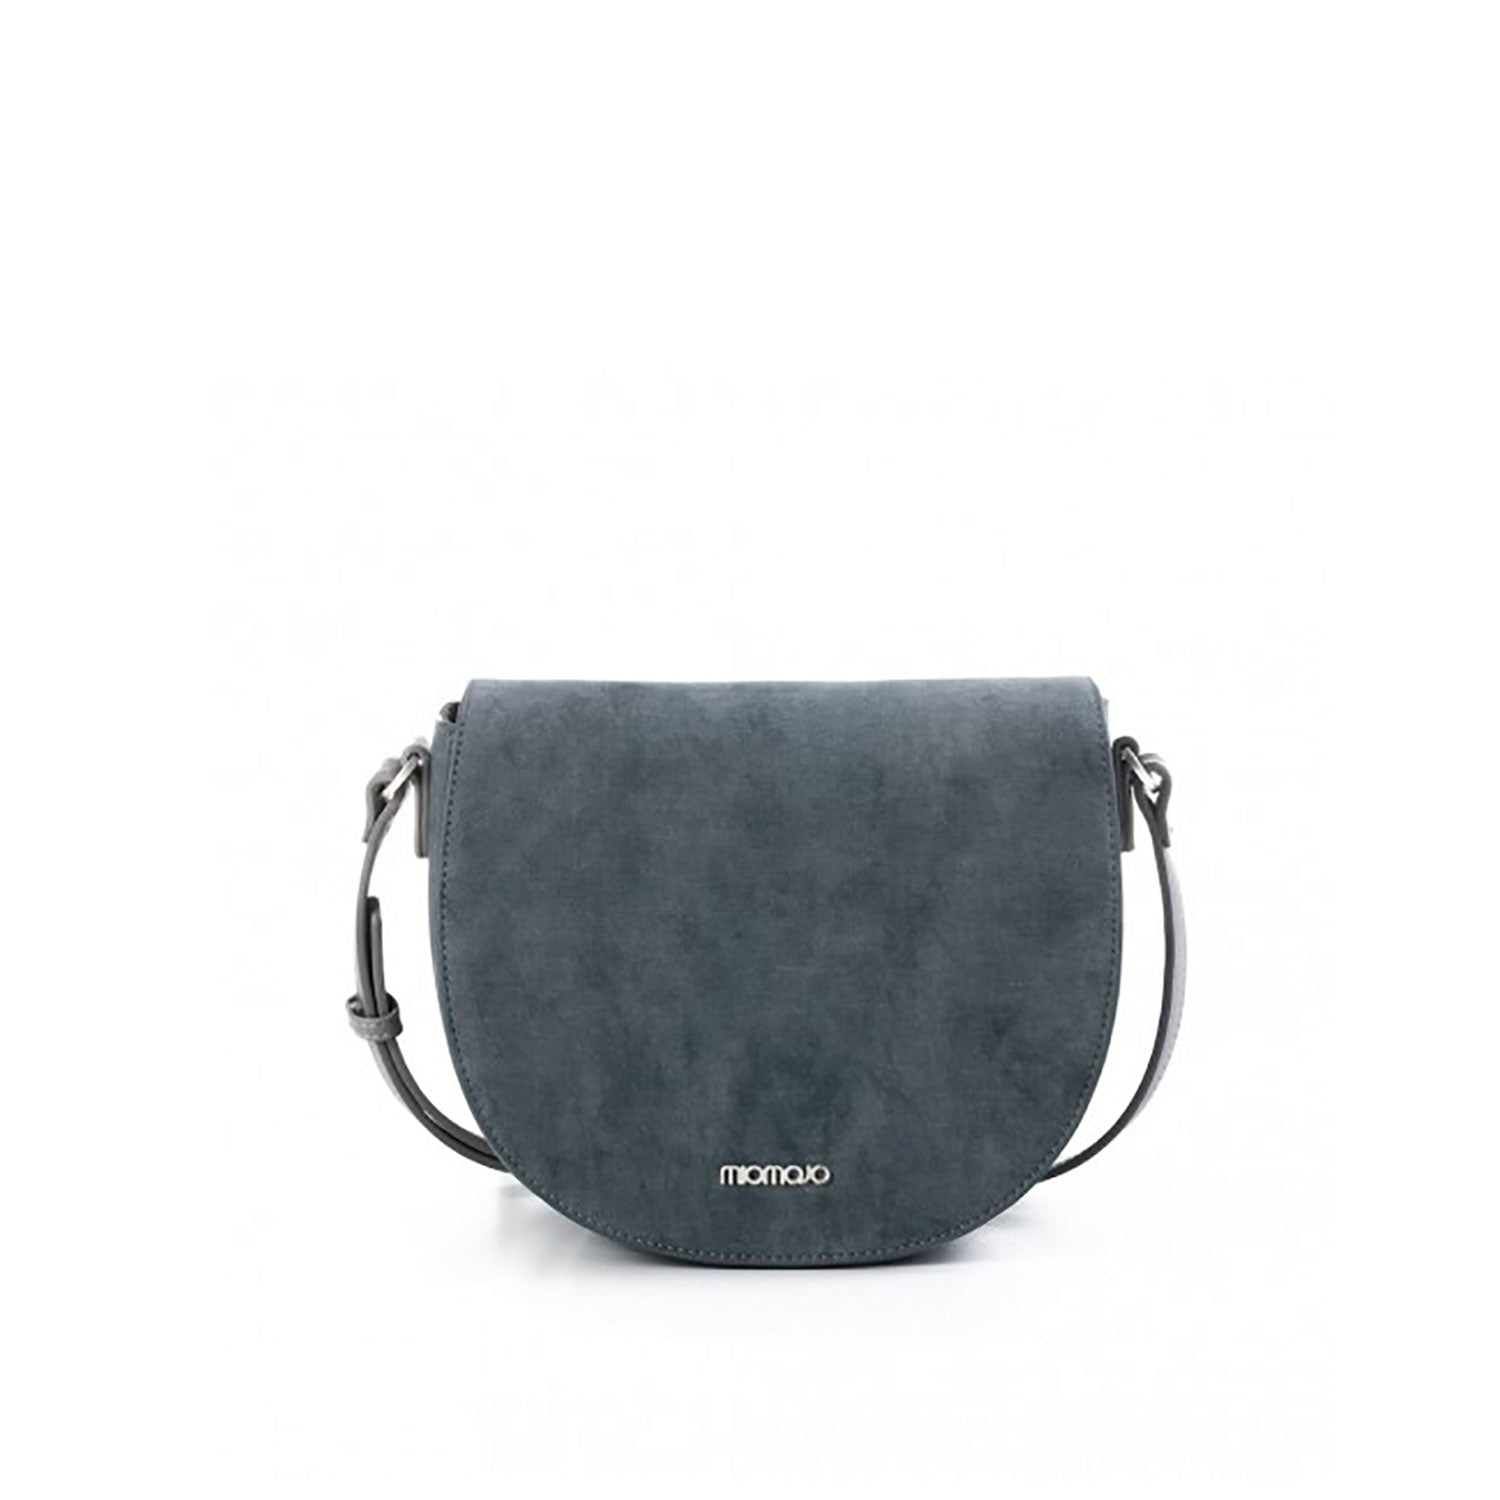 La Monnalisa Saddle Bag